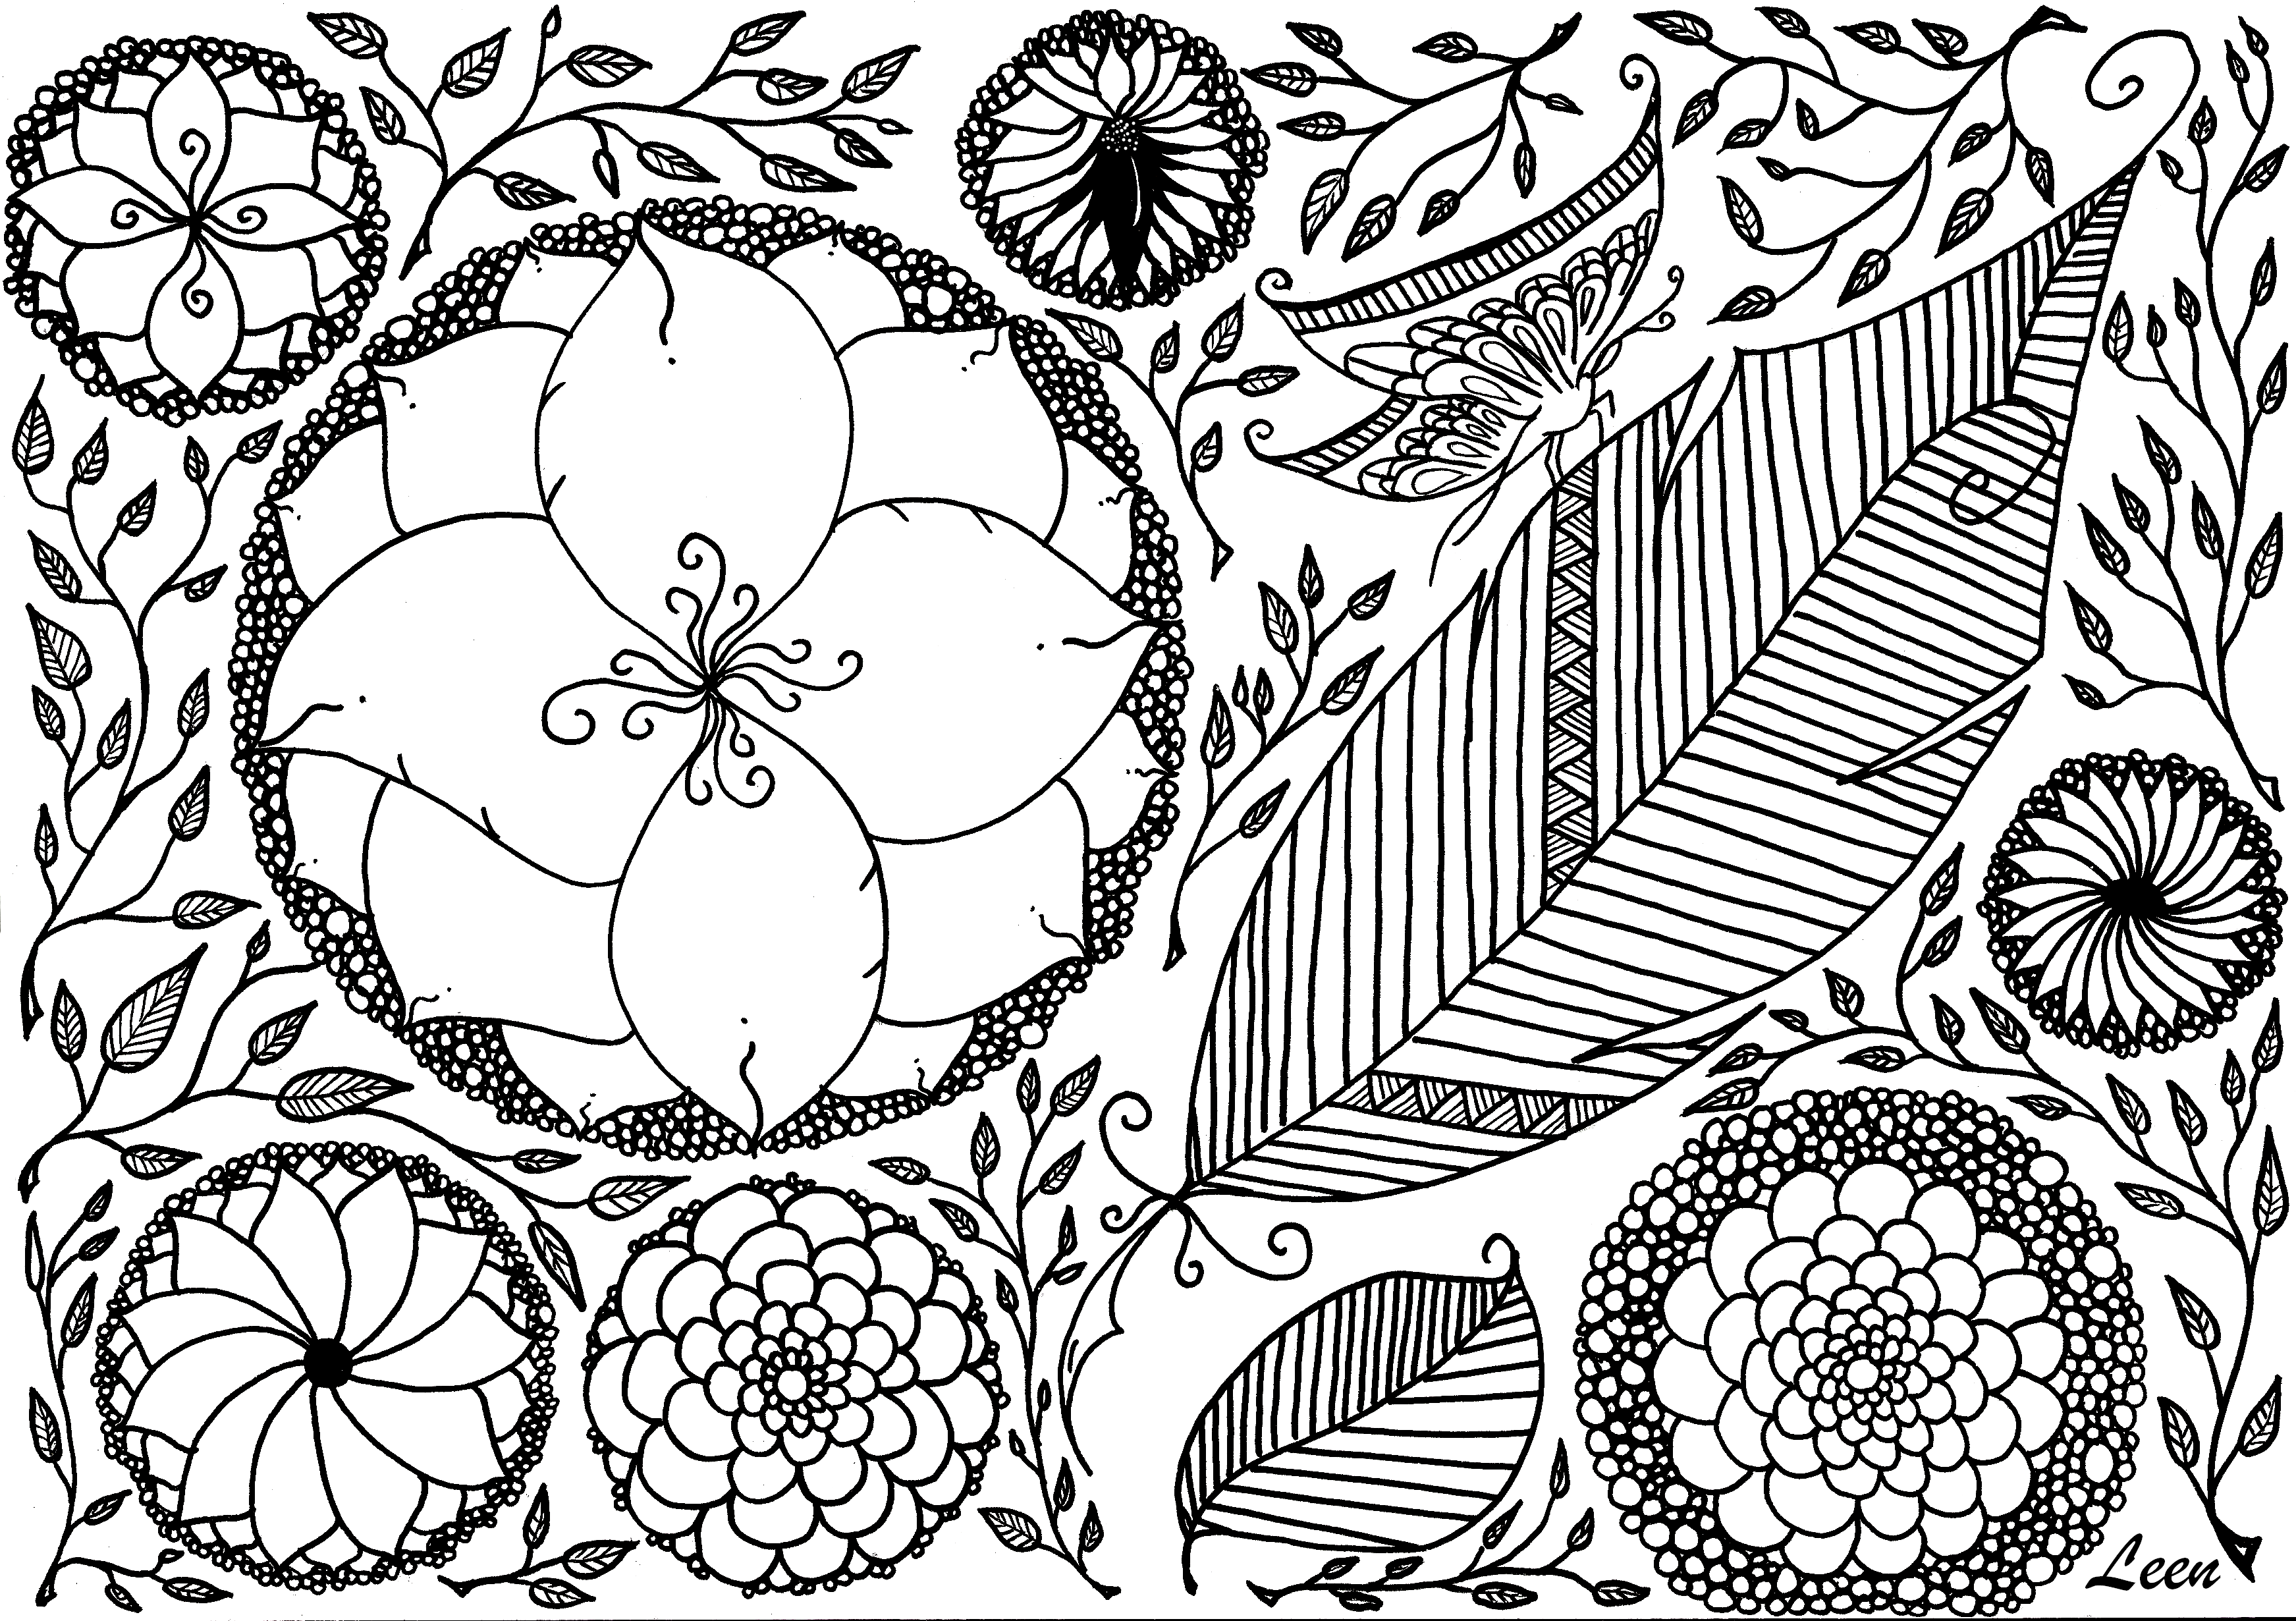 Leen margot spring Zen and Anti stress Coloring pages for adults